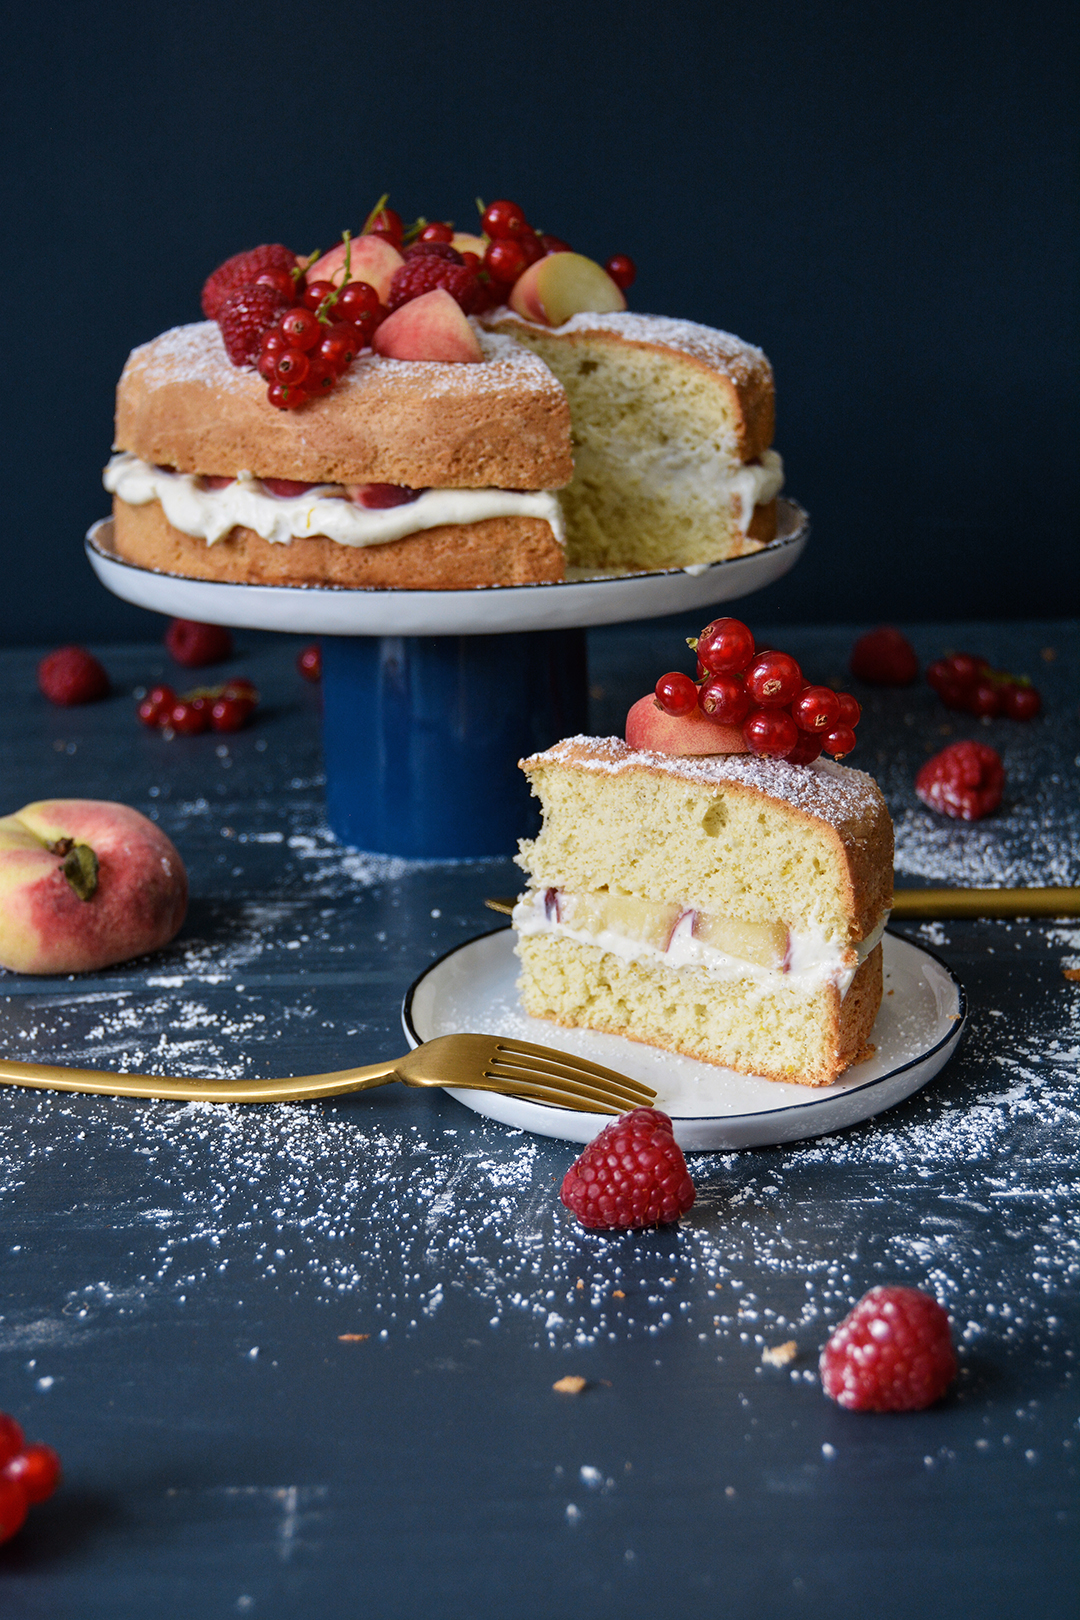 Peach and Ricotta Summer Sponge Torte